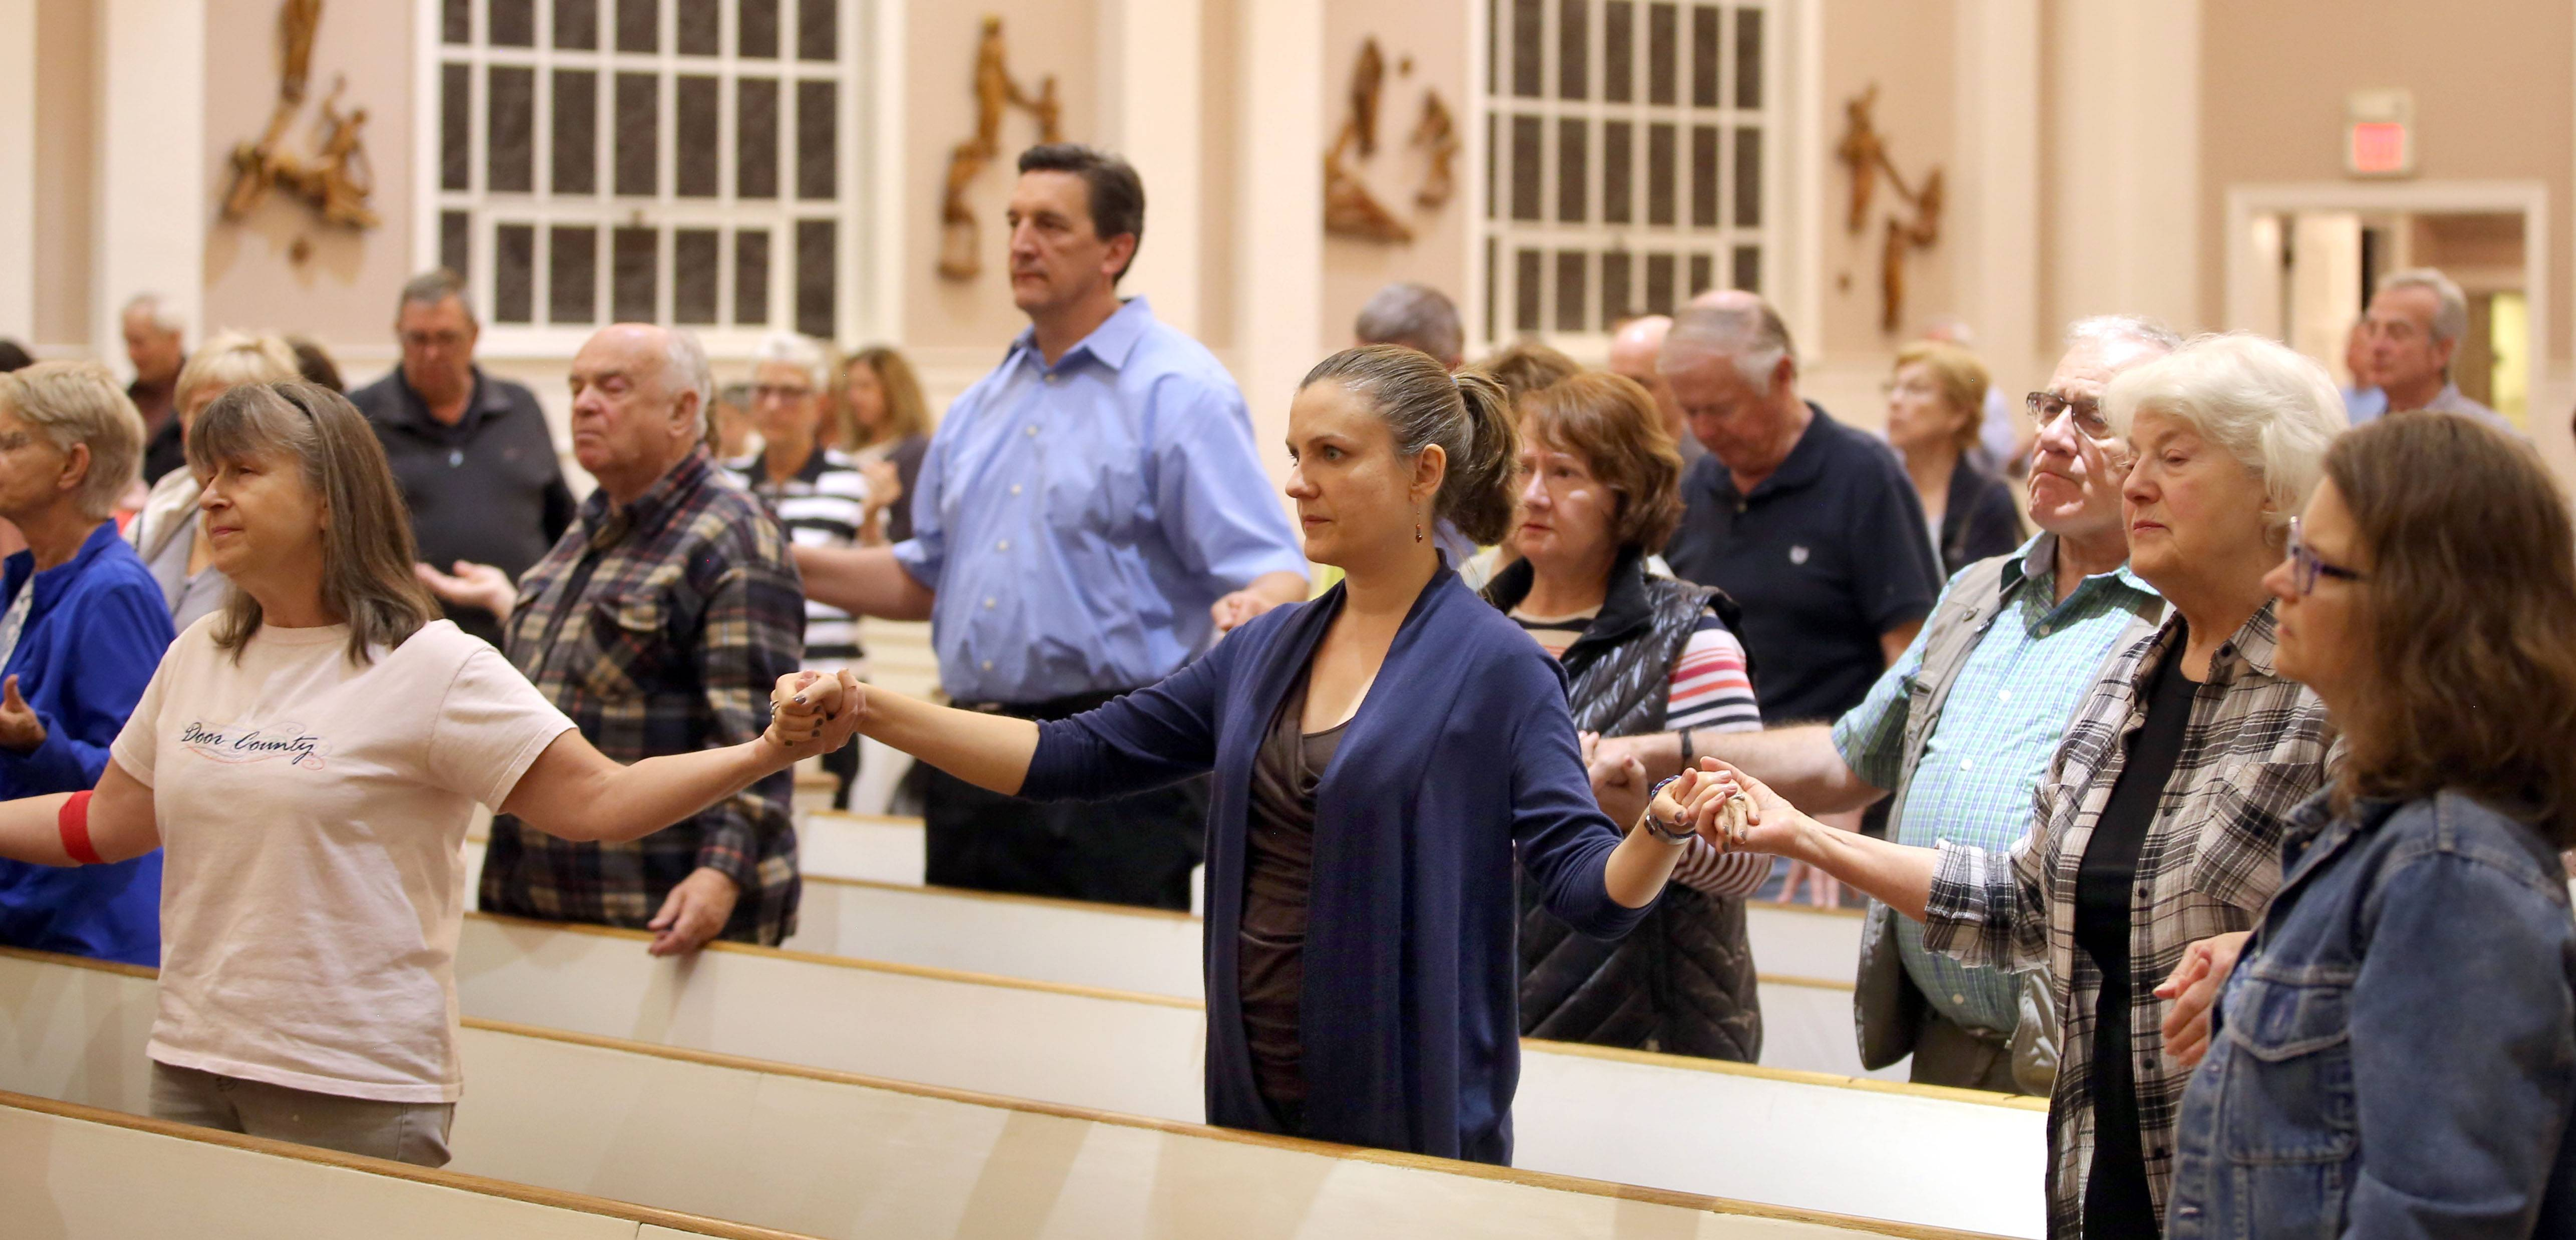 Parishioners of St. James Catholic Church in Arlington Heights hold hands during a prayer vigil for the Las Vegas shooting victims Monday evening.